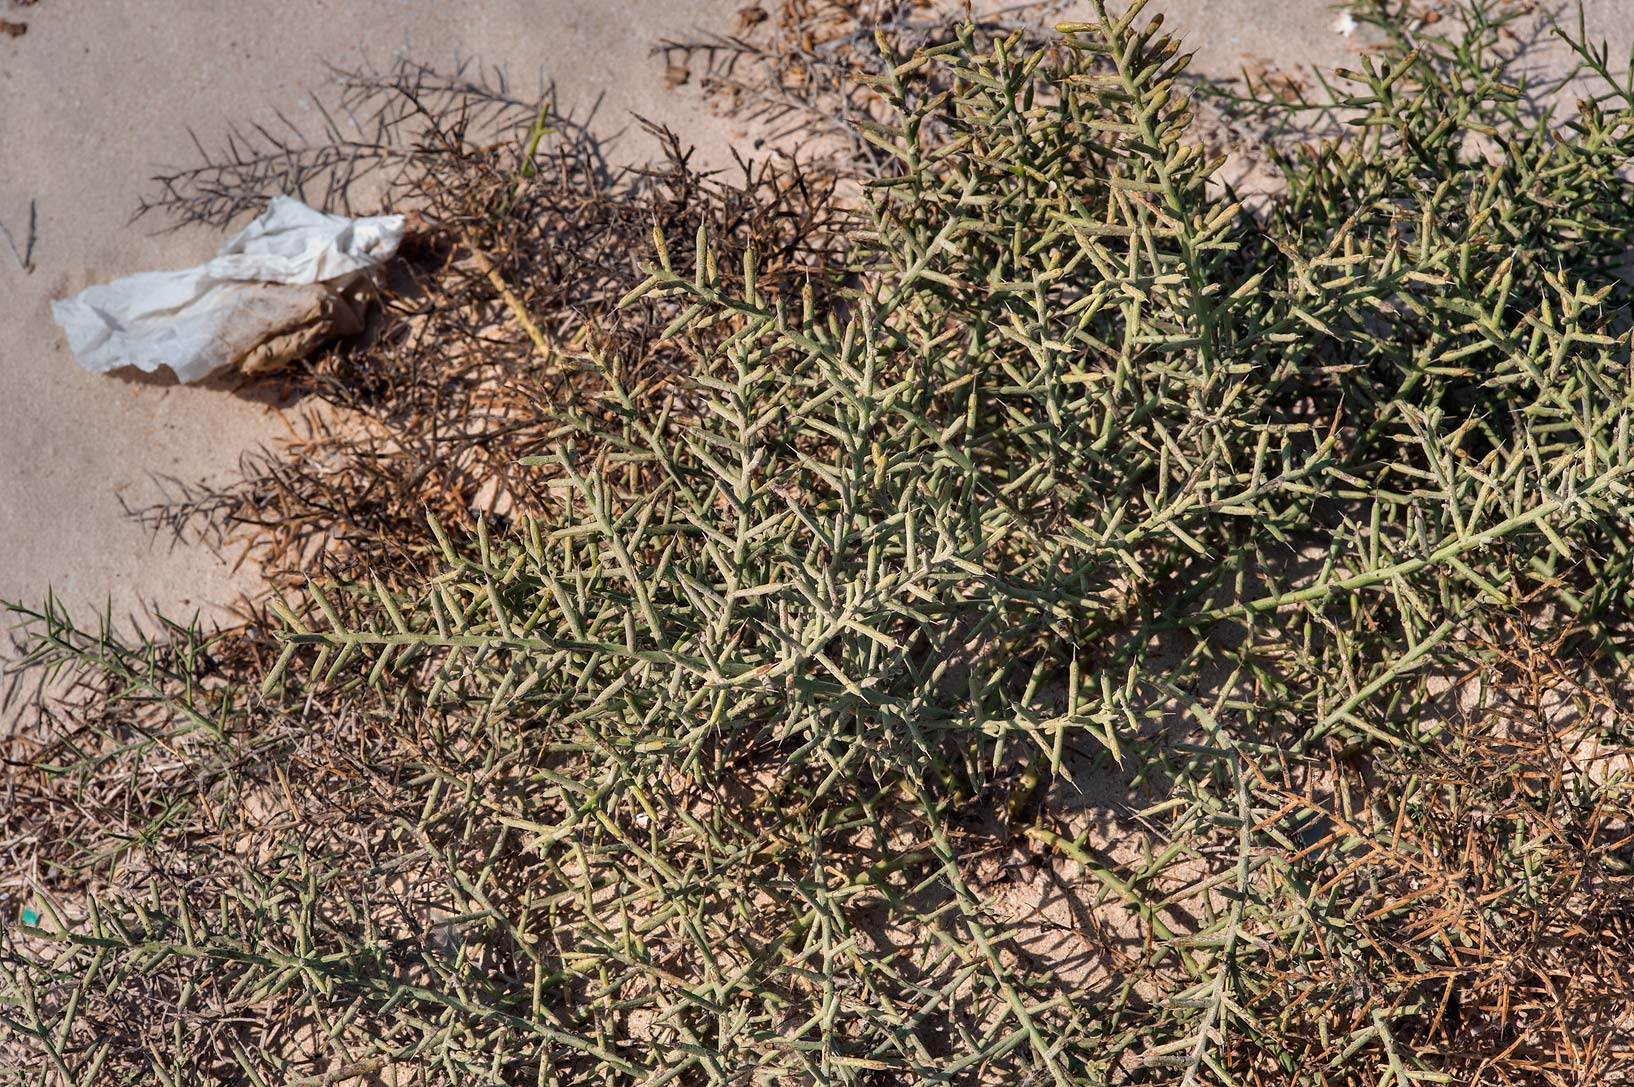 Camelthorn bush (Alhagi maurorum) on a beach in...Well near Umm Bab. South-western Qatar